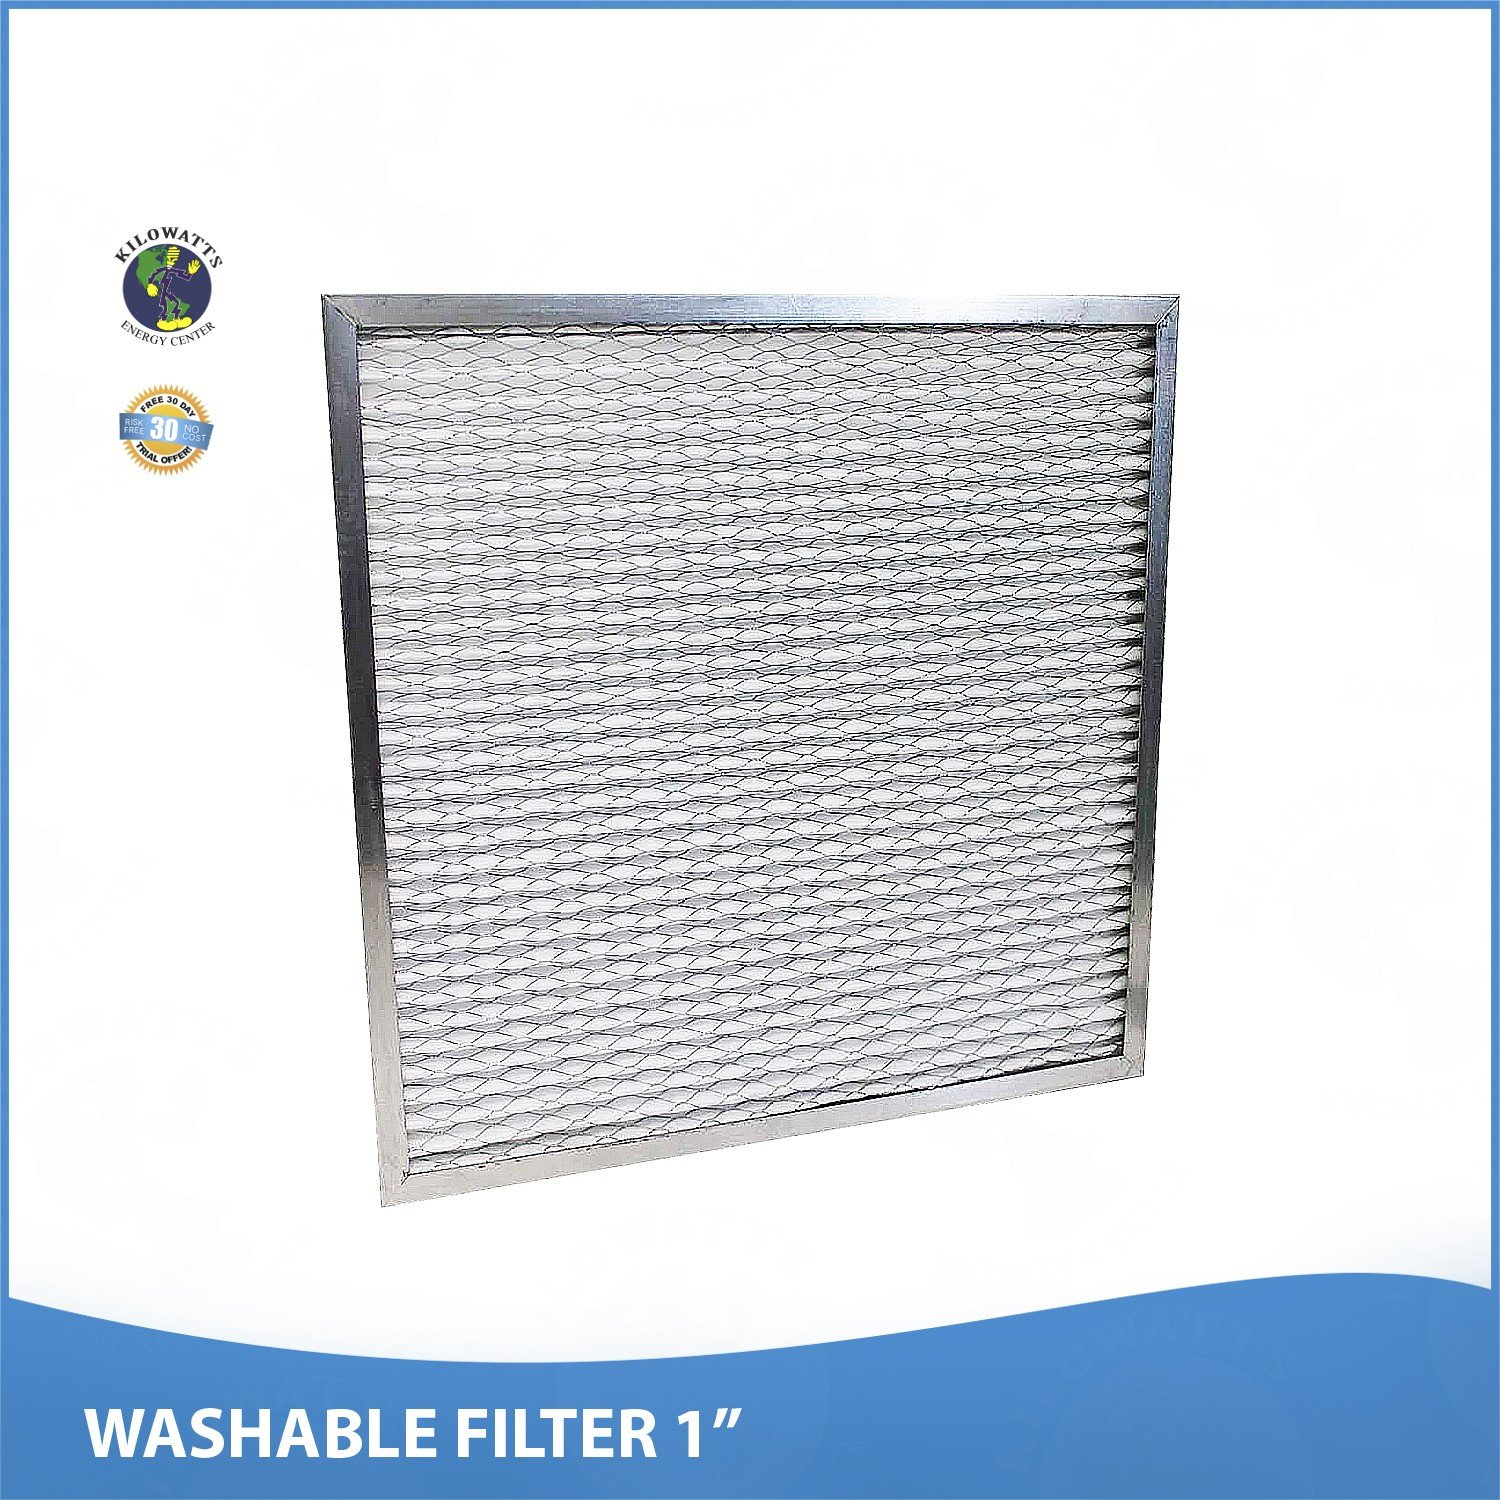 10x10x1 Washable Permanent A/C Furnace Air Filter. Low Air Resistance